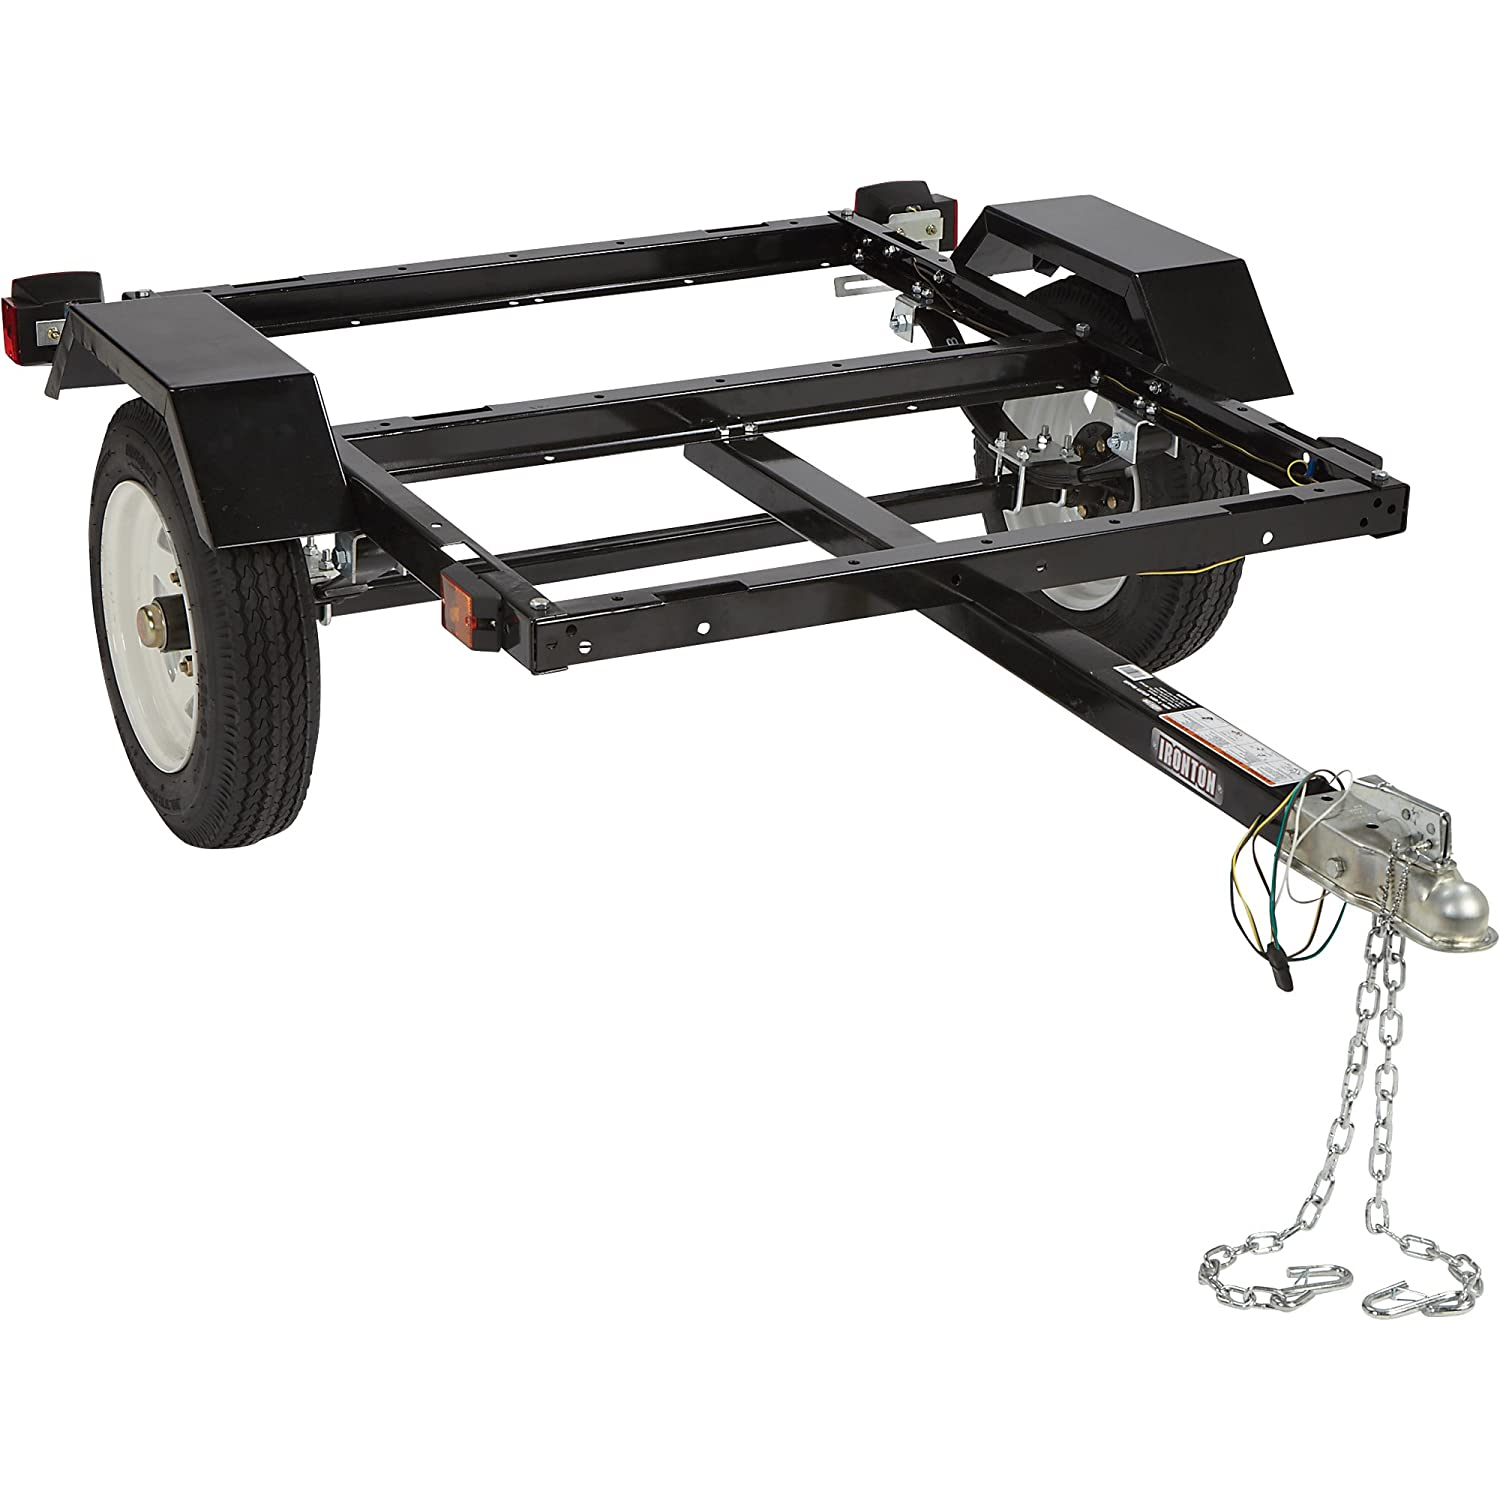 Ironton Utility Trailer Kit With 40in X 48in Bed Harbor Freight Folding Build Part 2 Wheels And Wiring 1060 Lb Capacity Automotive